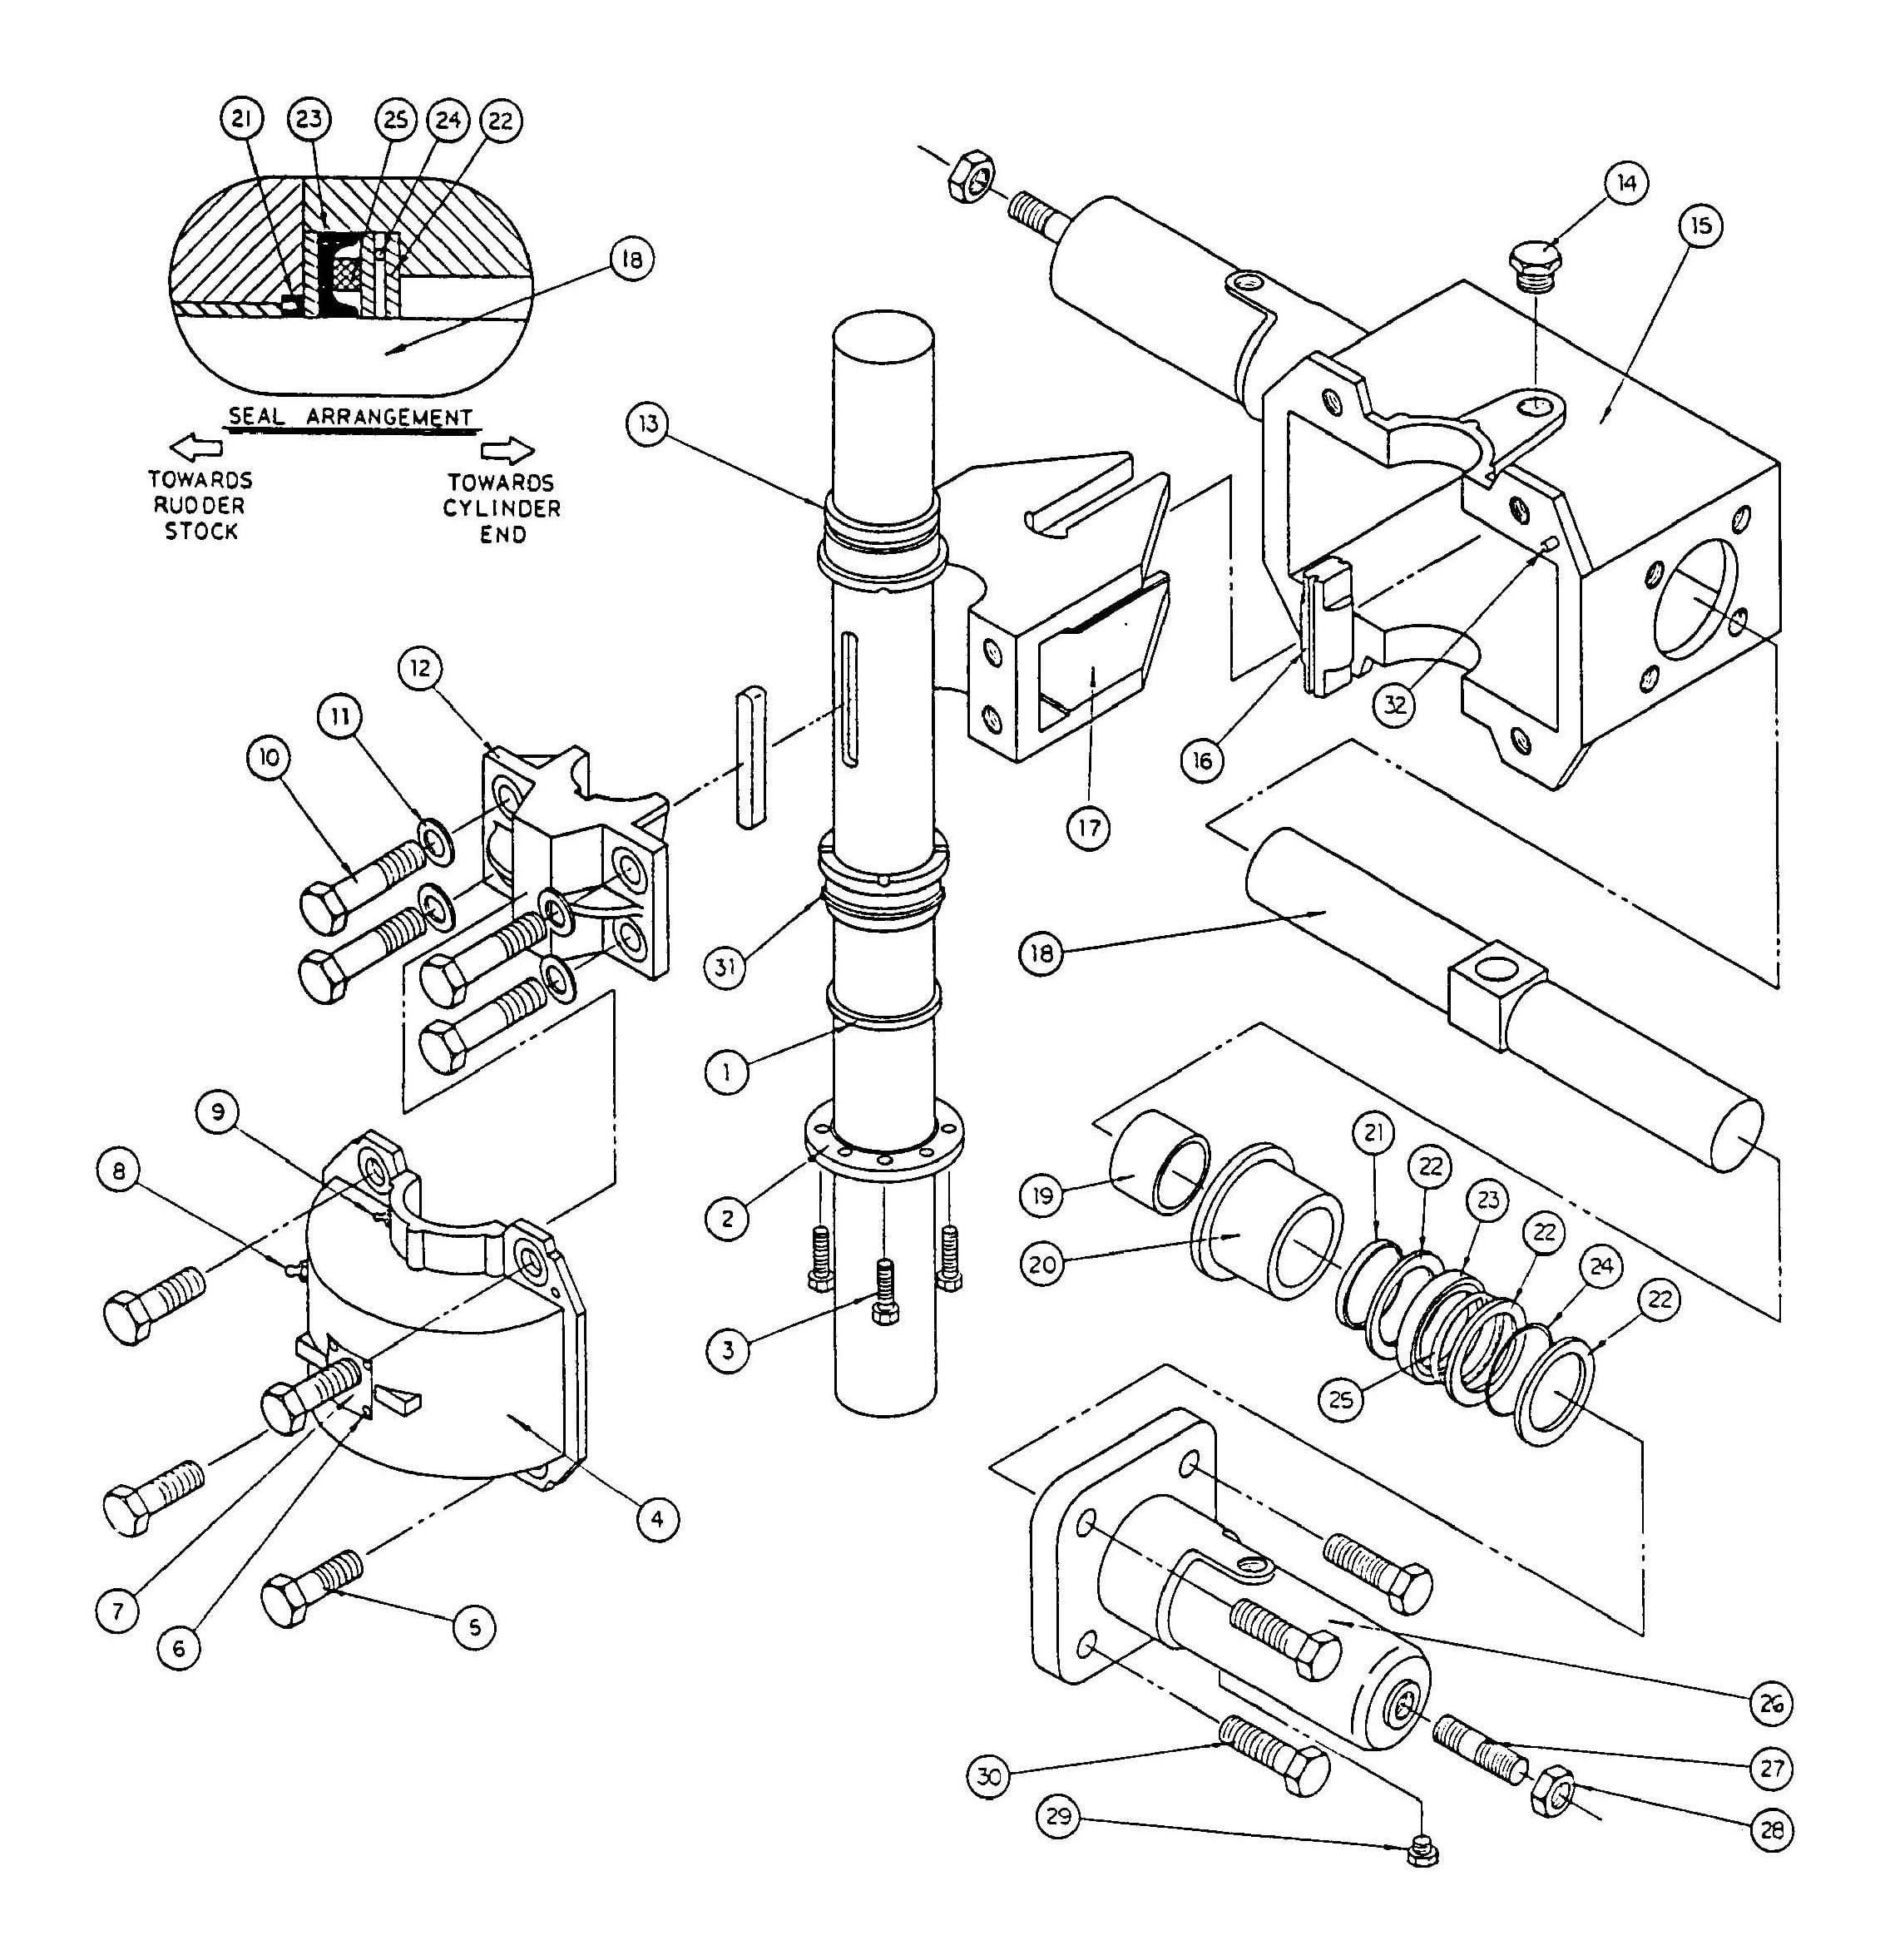 Model T10 & T11 Actuator Assembly Diagram